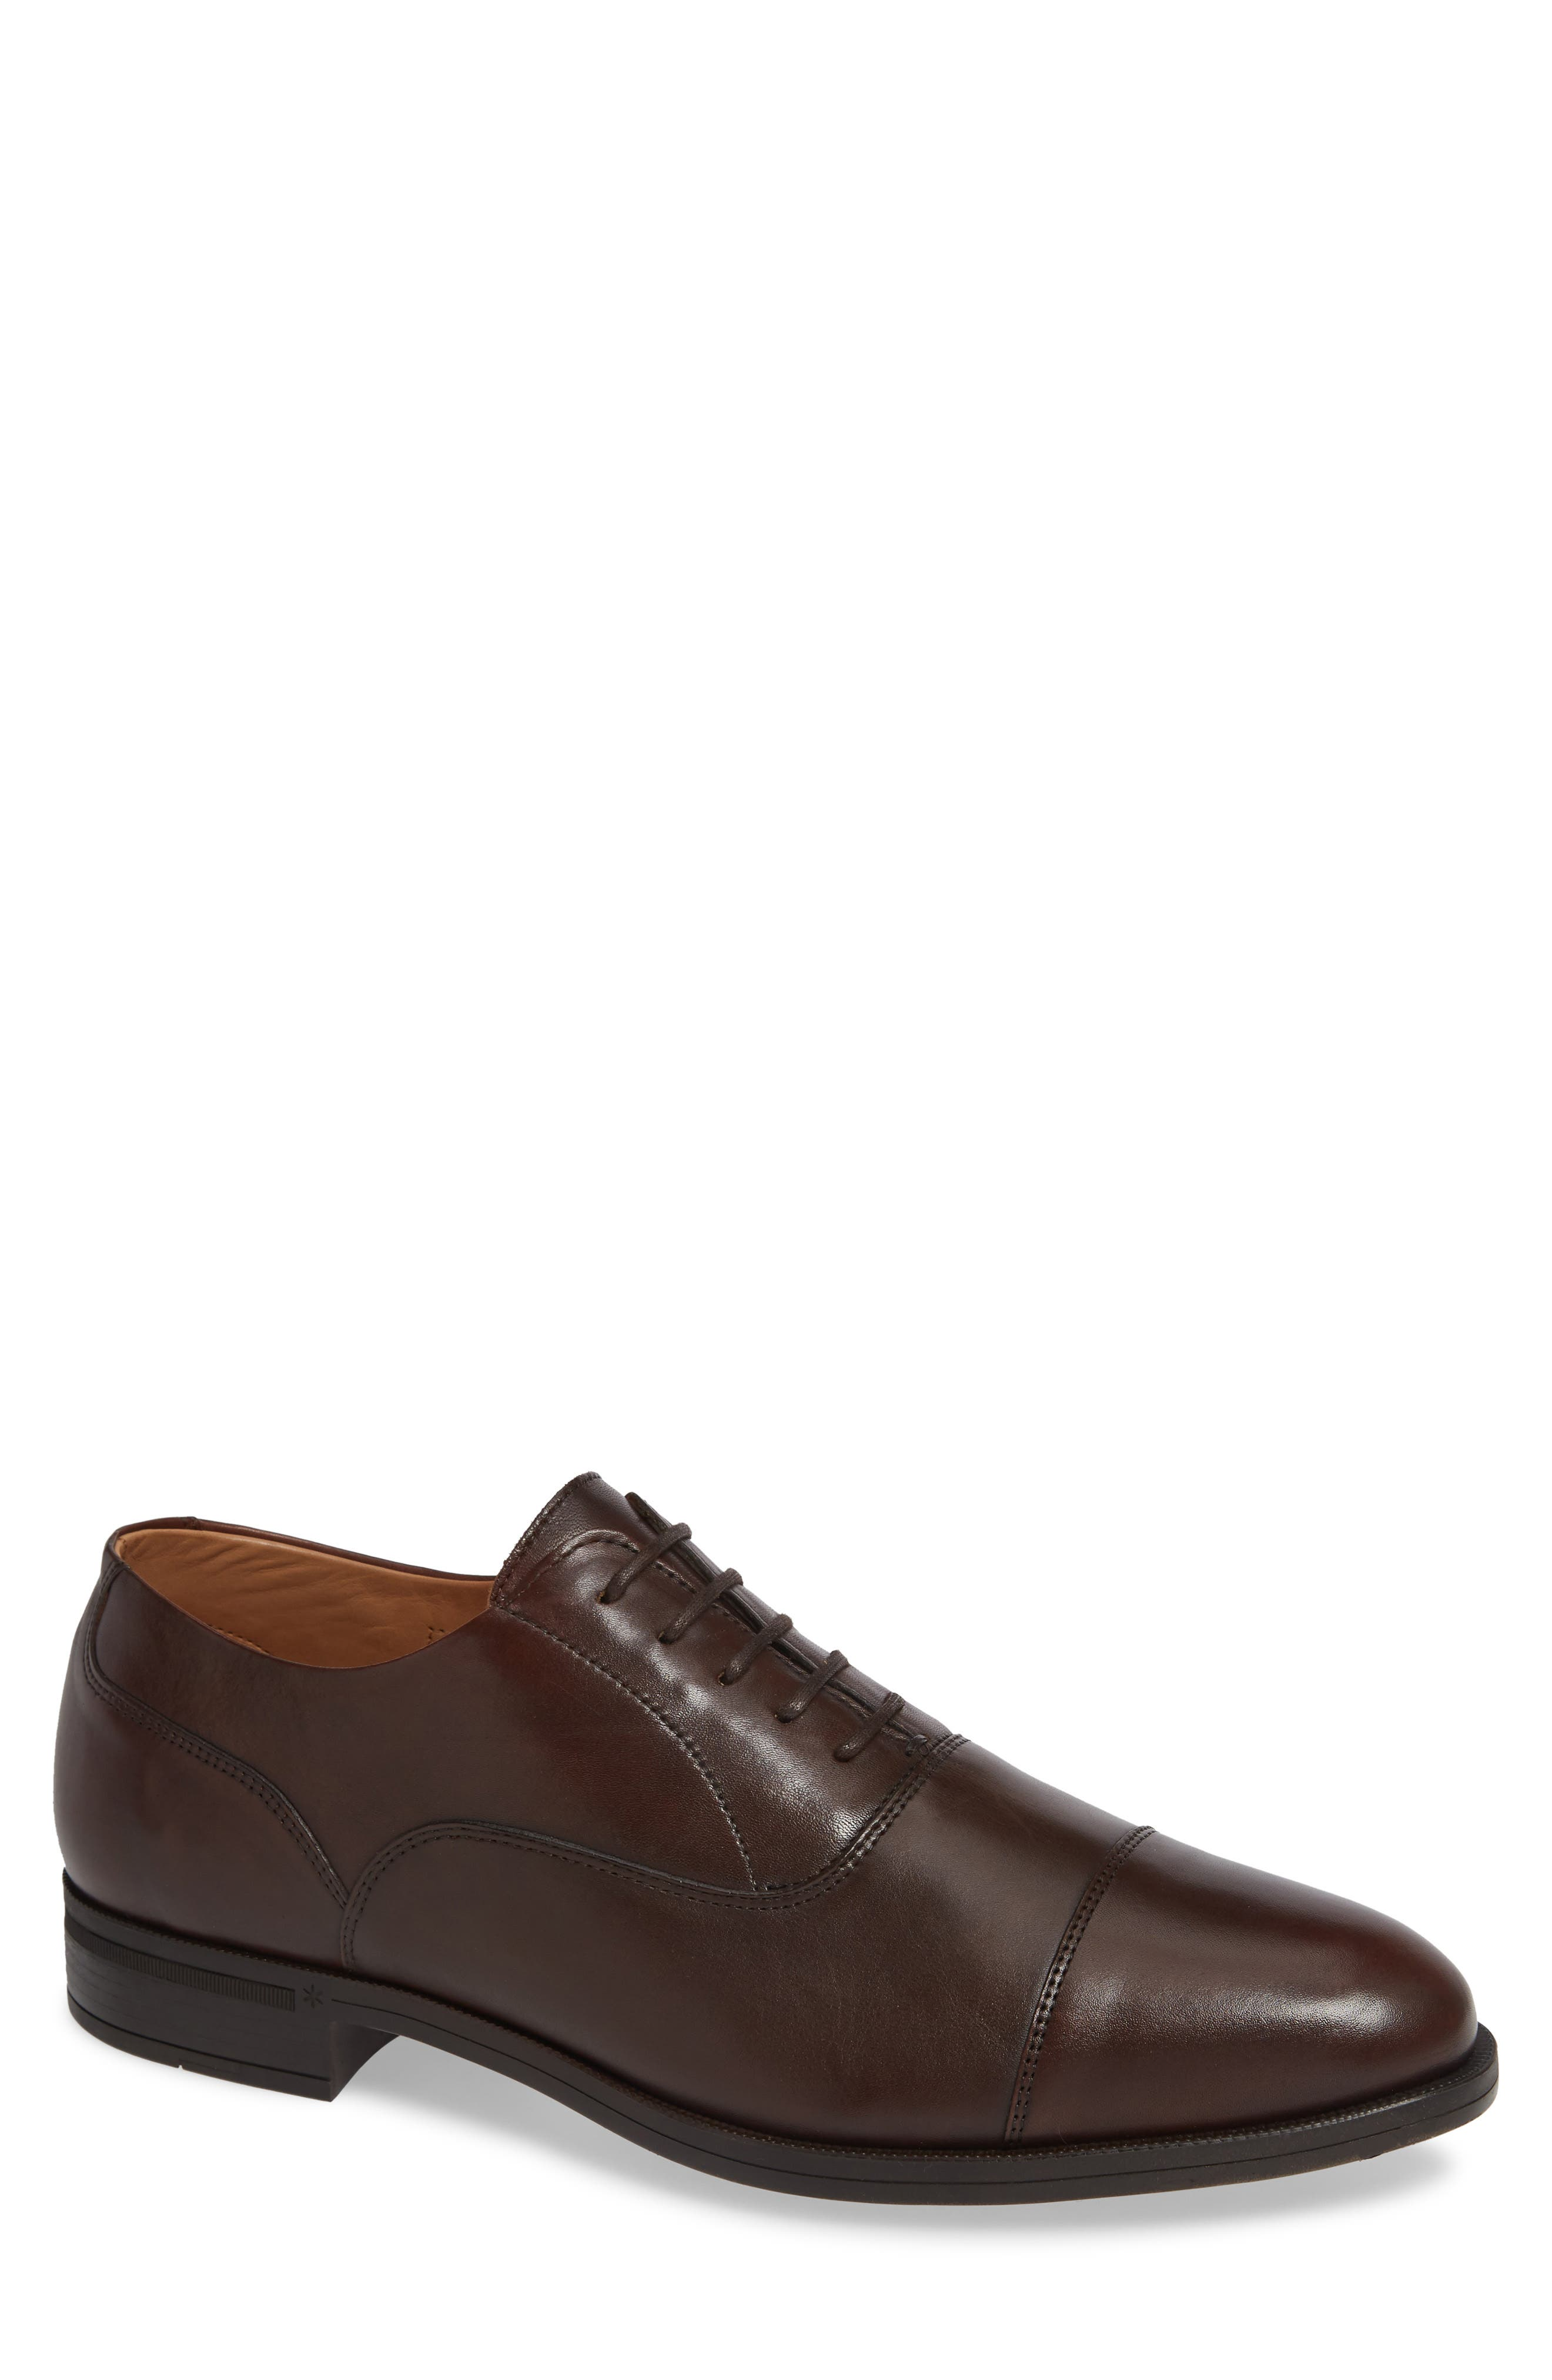 VINCE CAMUTO, Iven Cap Toe Oxford, Main thumbnail 1, color, DARK BROWN LEATHER